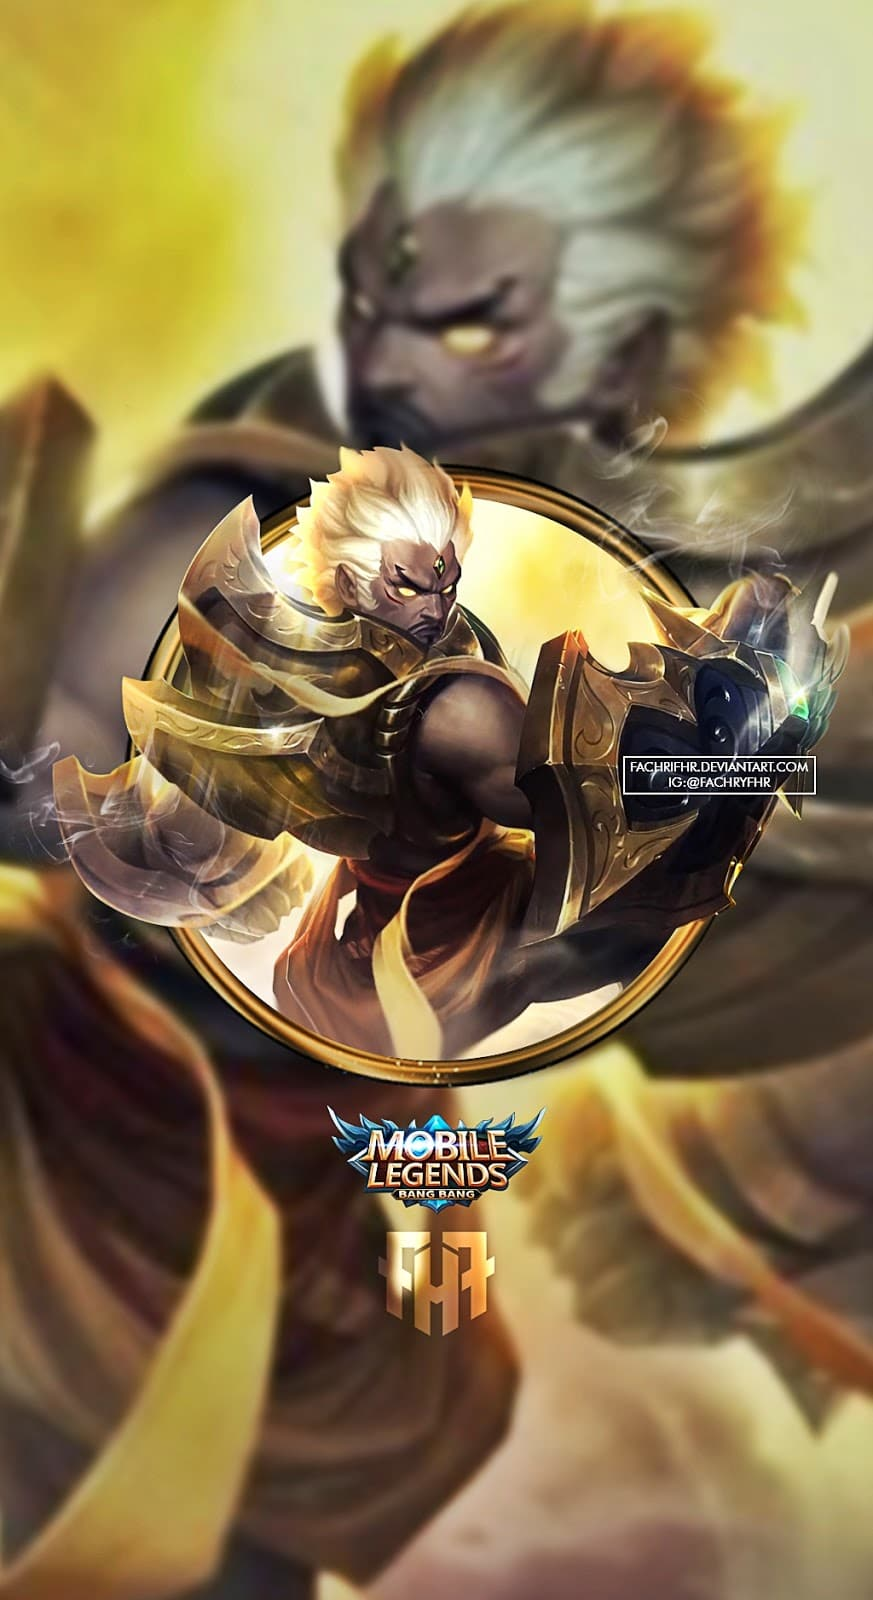 Wallpaper Gatotkaca Mobile Legends